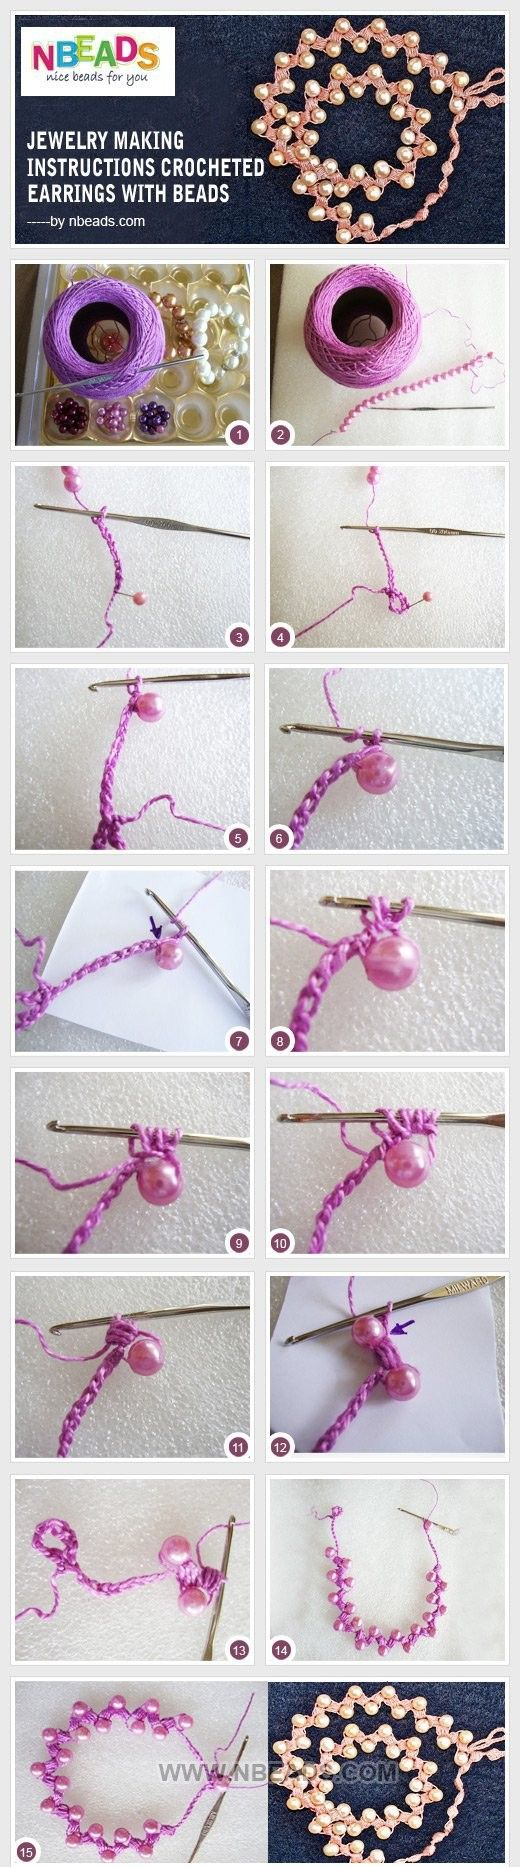 bead and crochet puff stitch necklace / bracelet